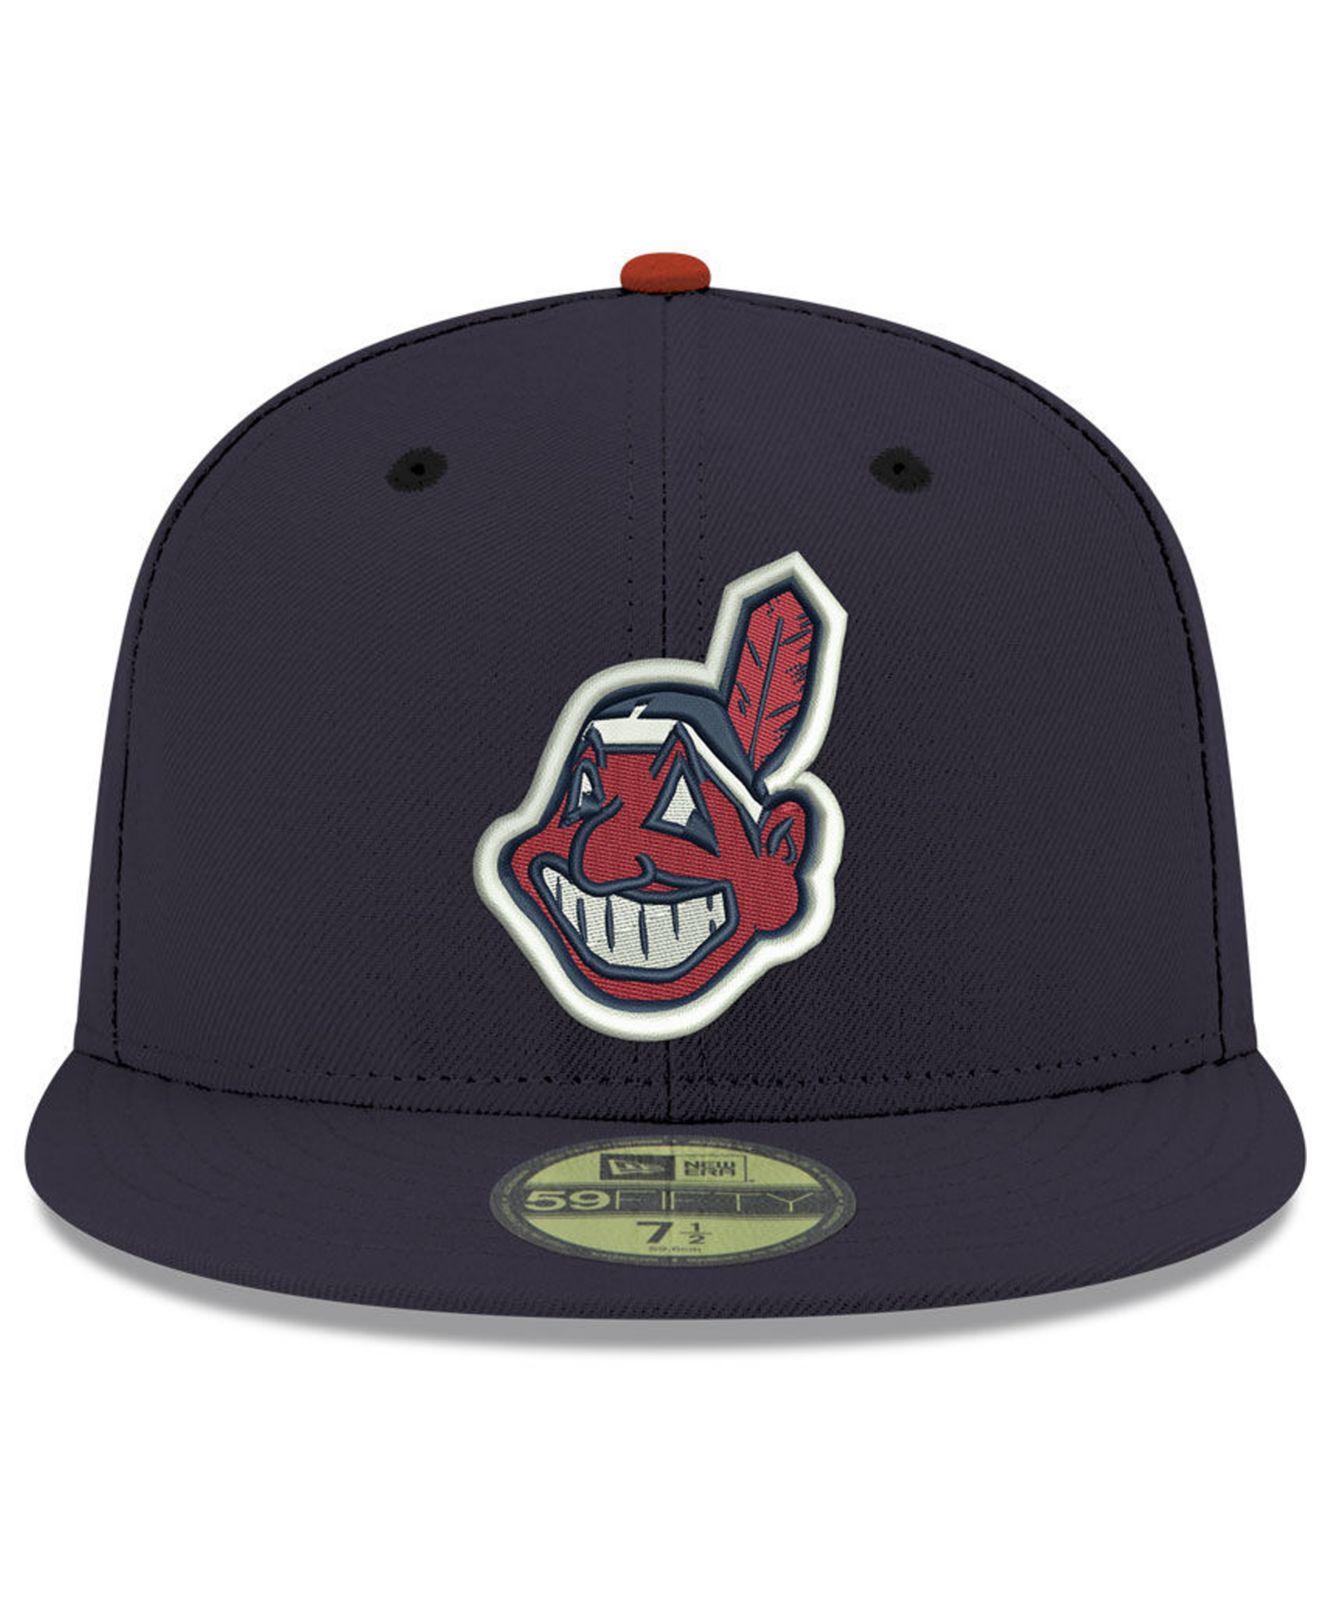 ccea23172614f KTZ Cleveland Indians Retro Classic 59fifty Fitted Cap in Blue for ...